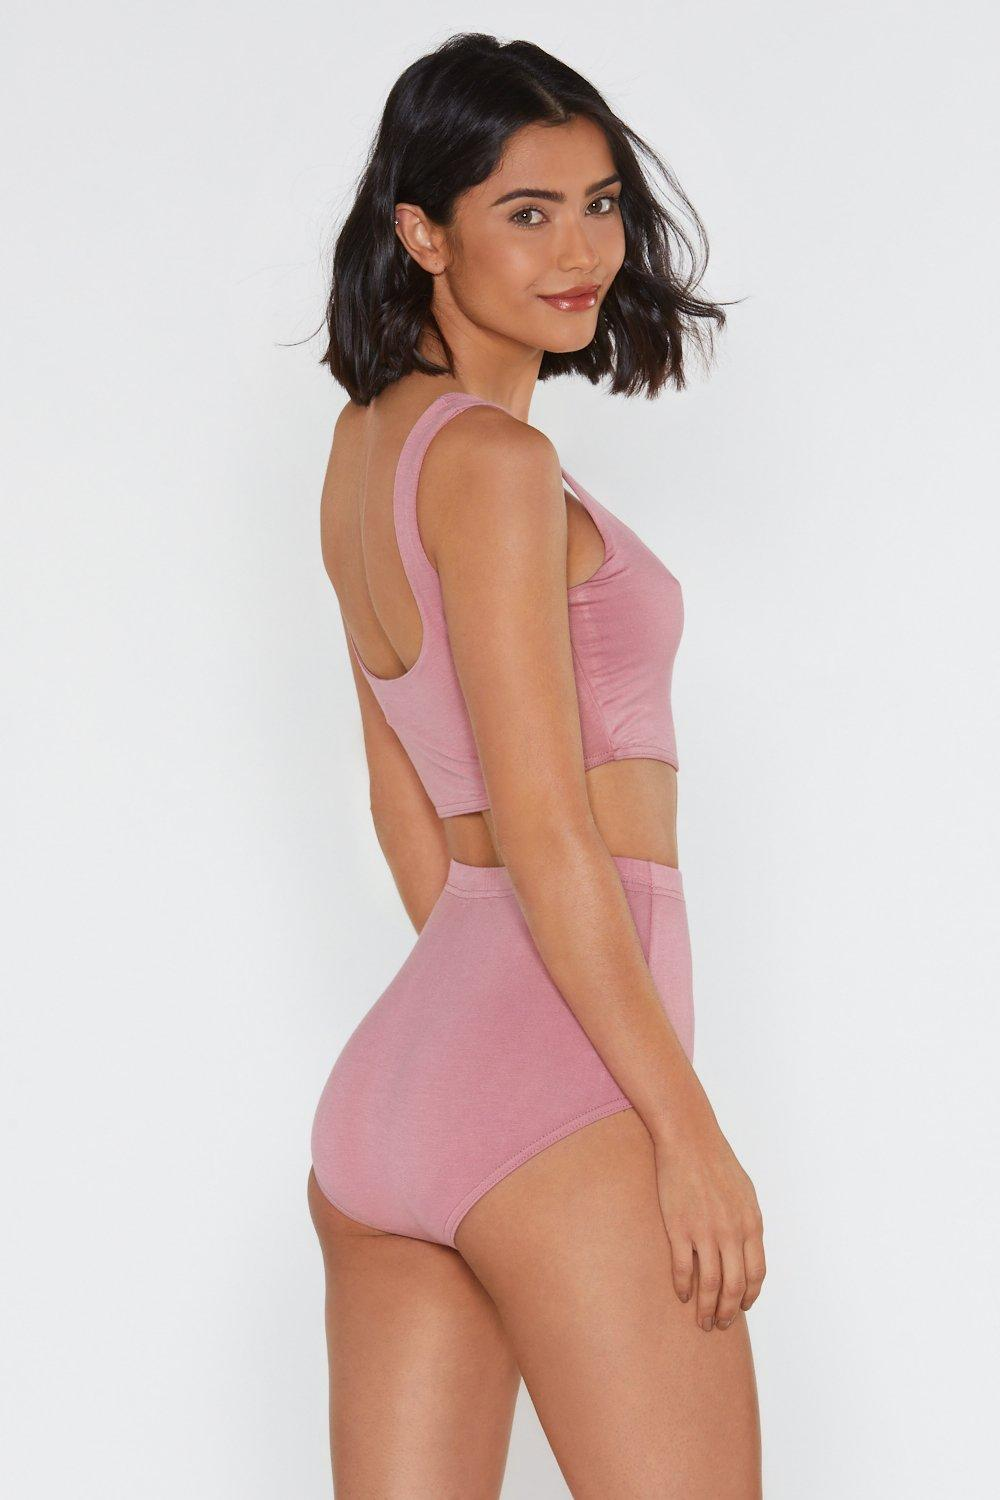 fd45ad8422 Never Two Part Bra Top and Panty Shorts Set. Hover to zoom